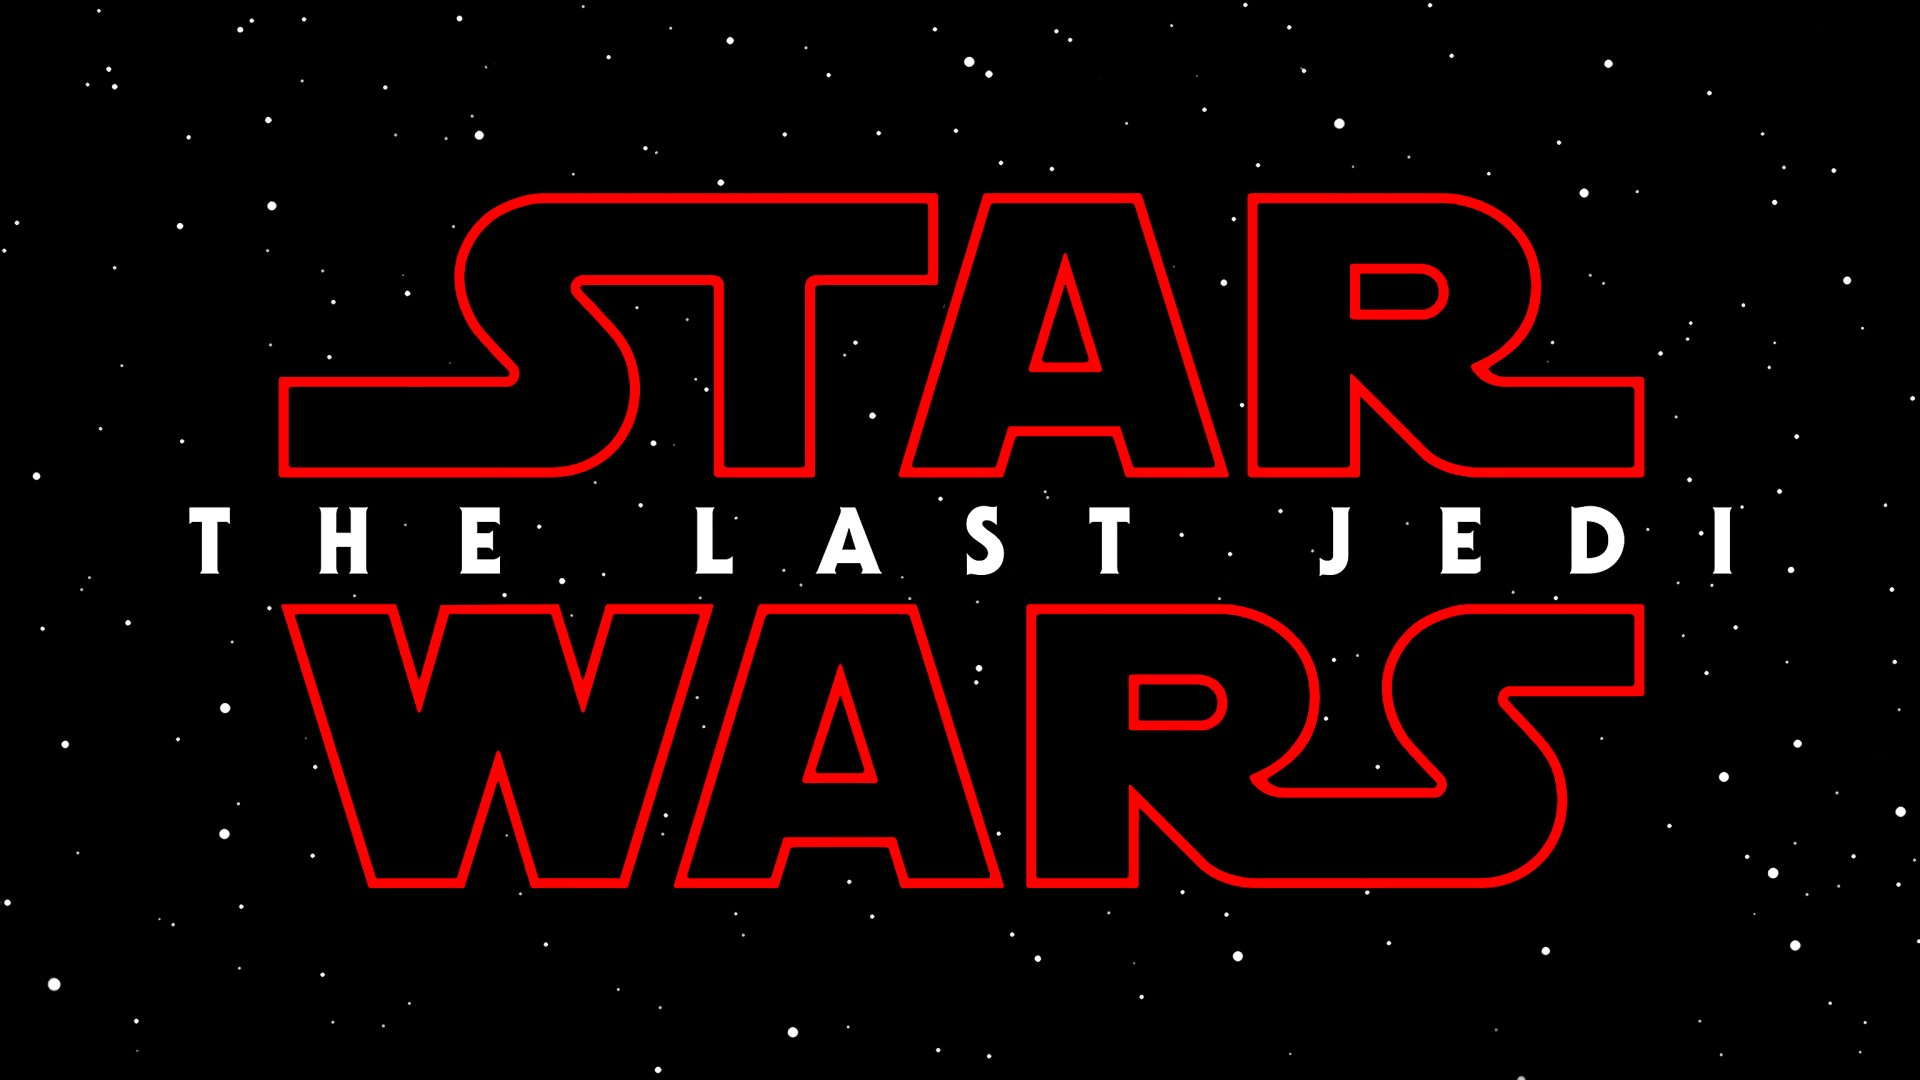 Movie - Star Wars: The Last Jedi  Logo Wallpaper